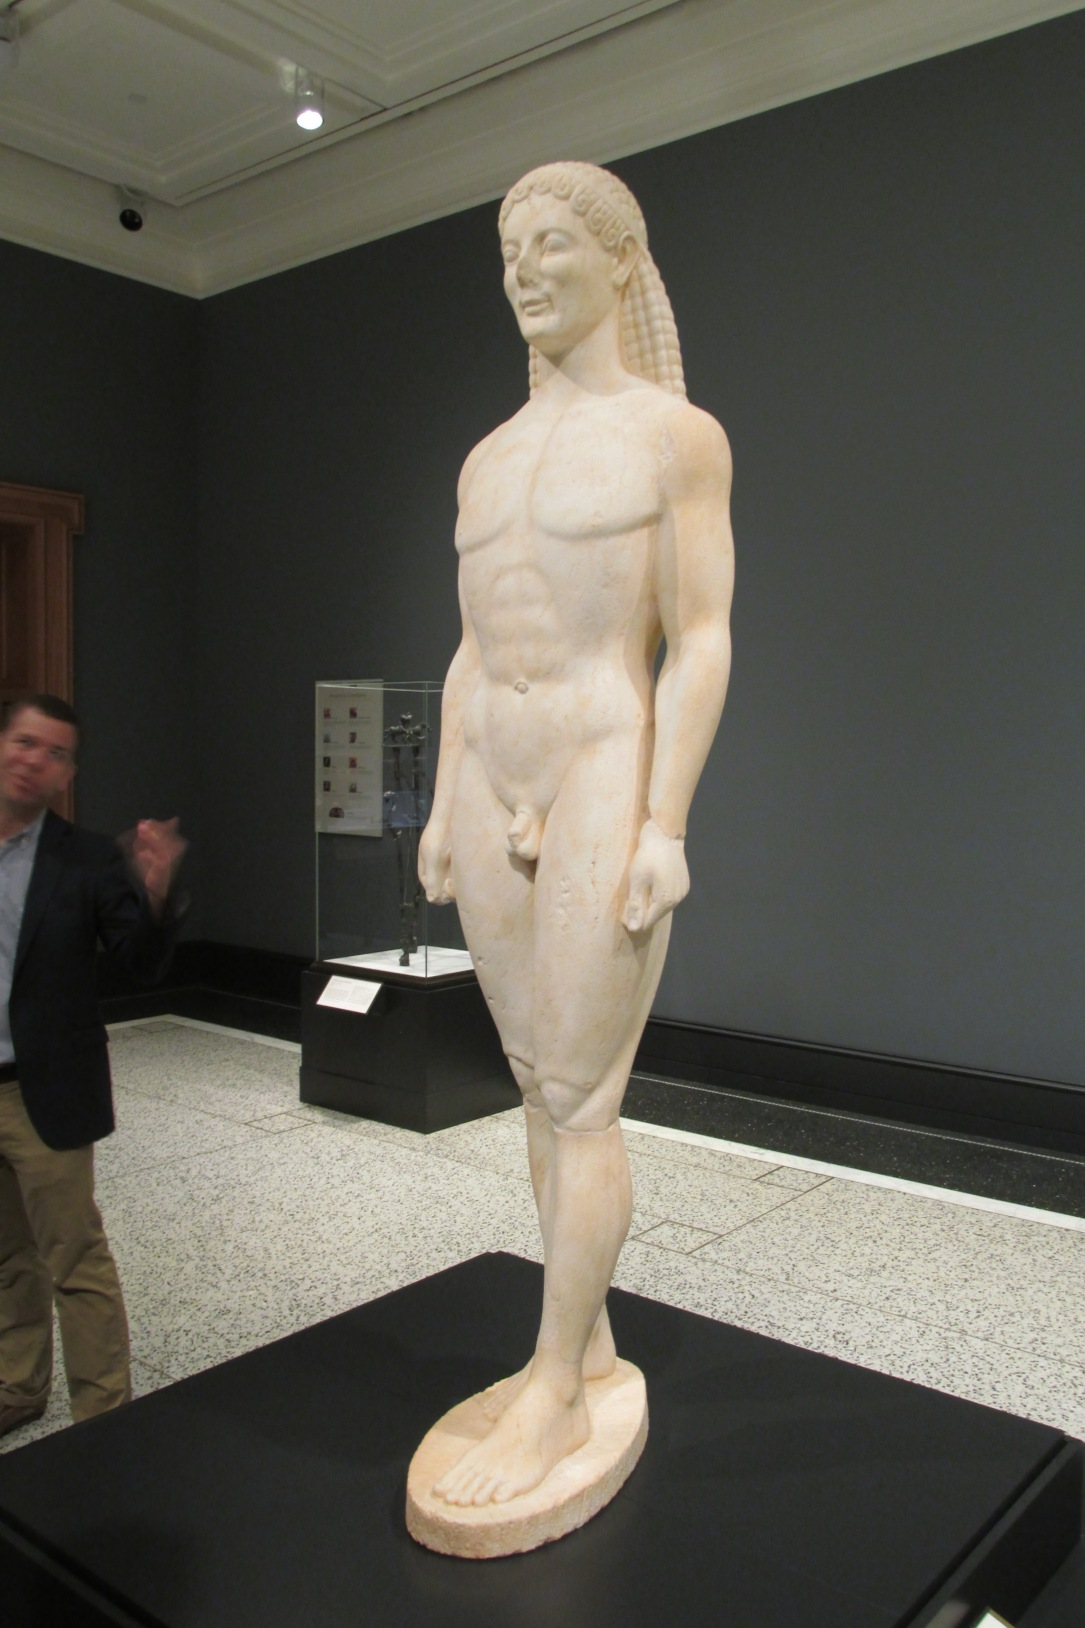 The Kouros.  Early attempt to depict the human figure in sculptural form.  Not bad for first try.